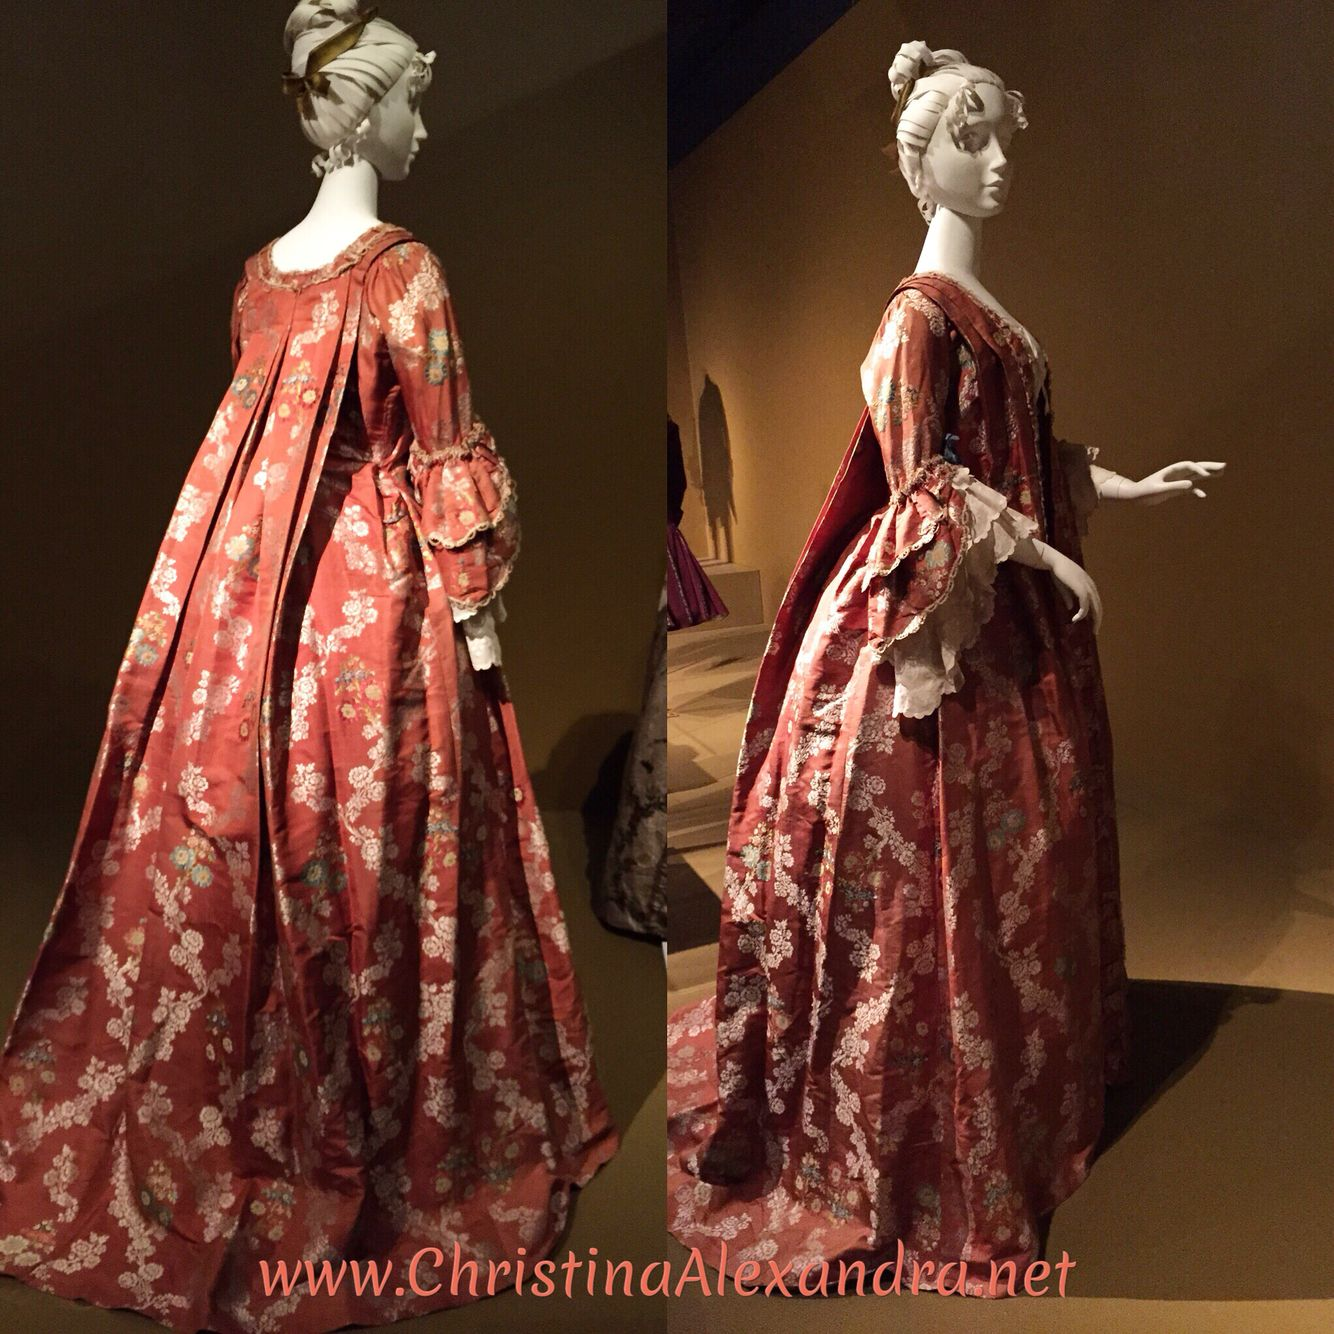 Gown Robe Volante Europe 1740s Brocaded Silk A Transitional Style Between The Tent Like Ve 18th Century Fashion 18th Century Dress 18th Century Clothing